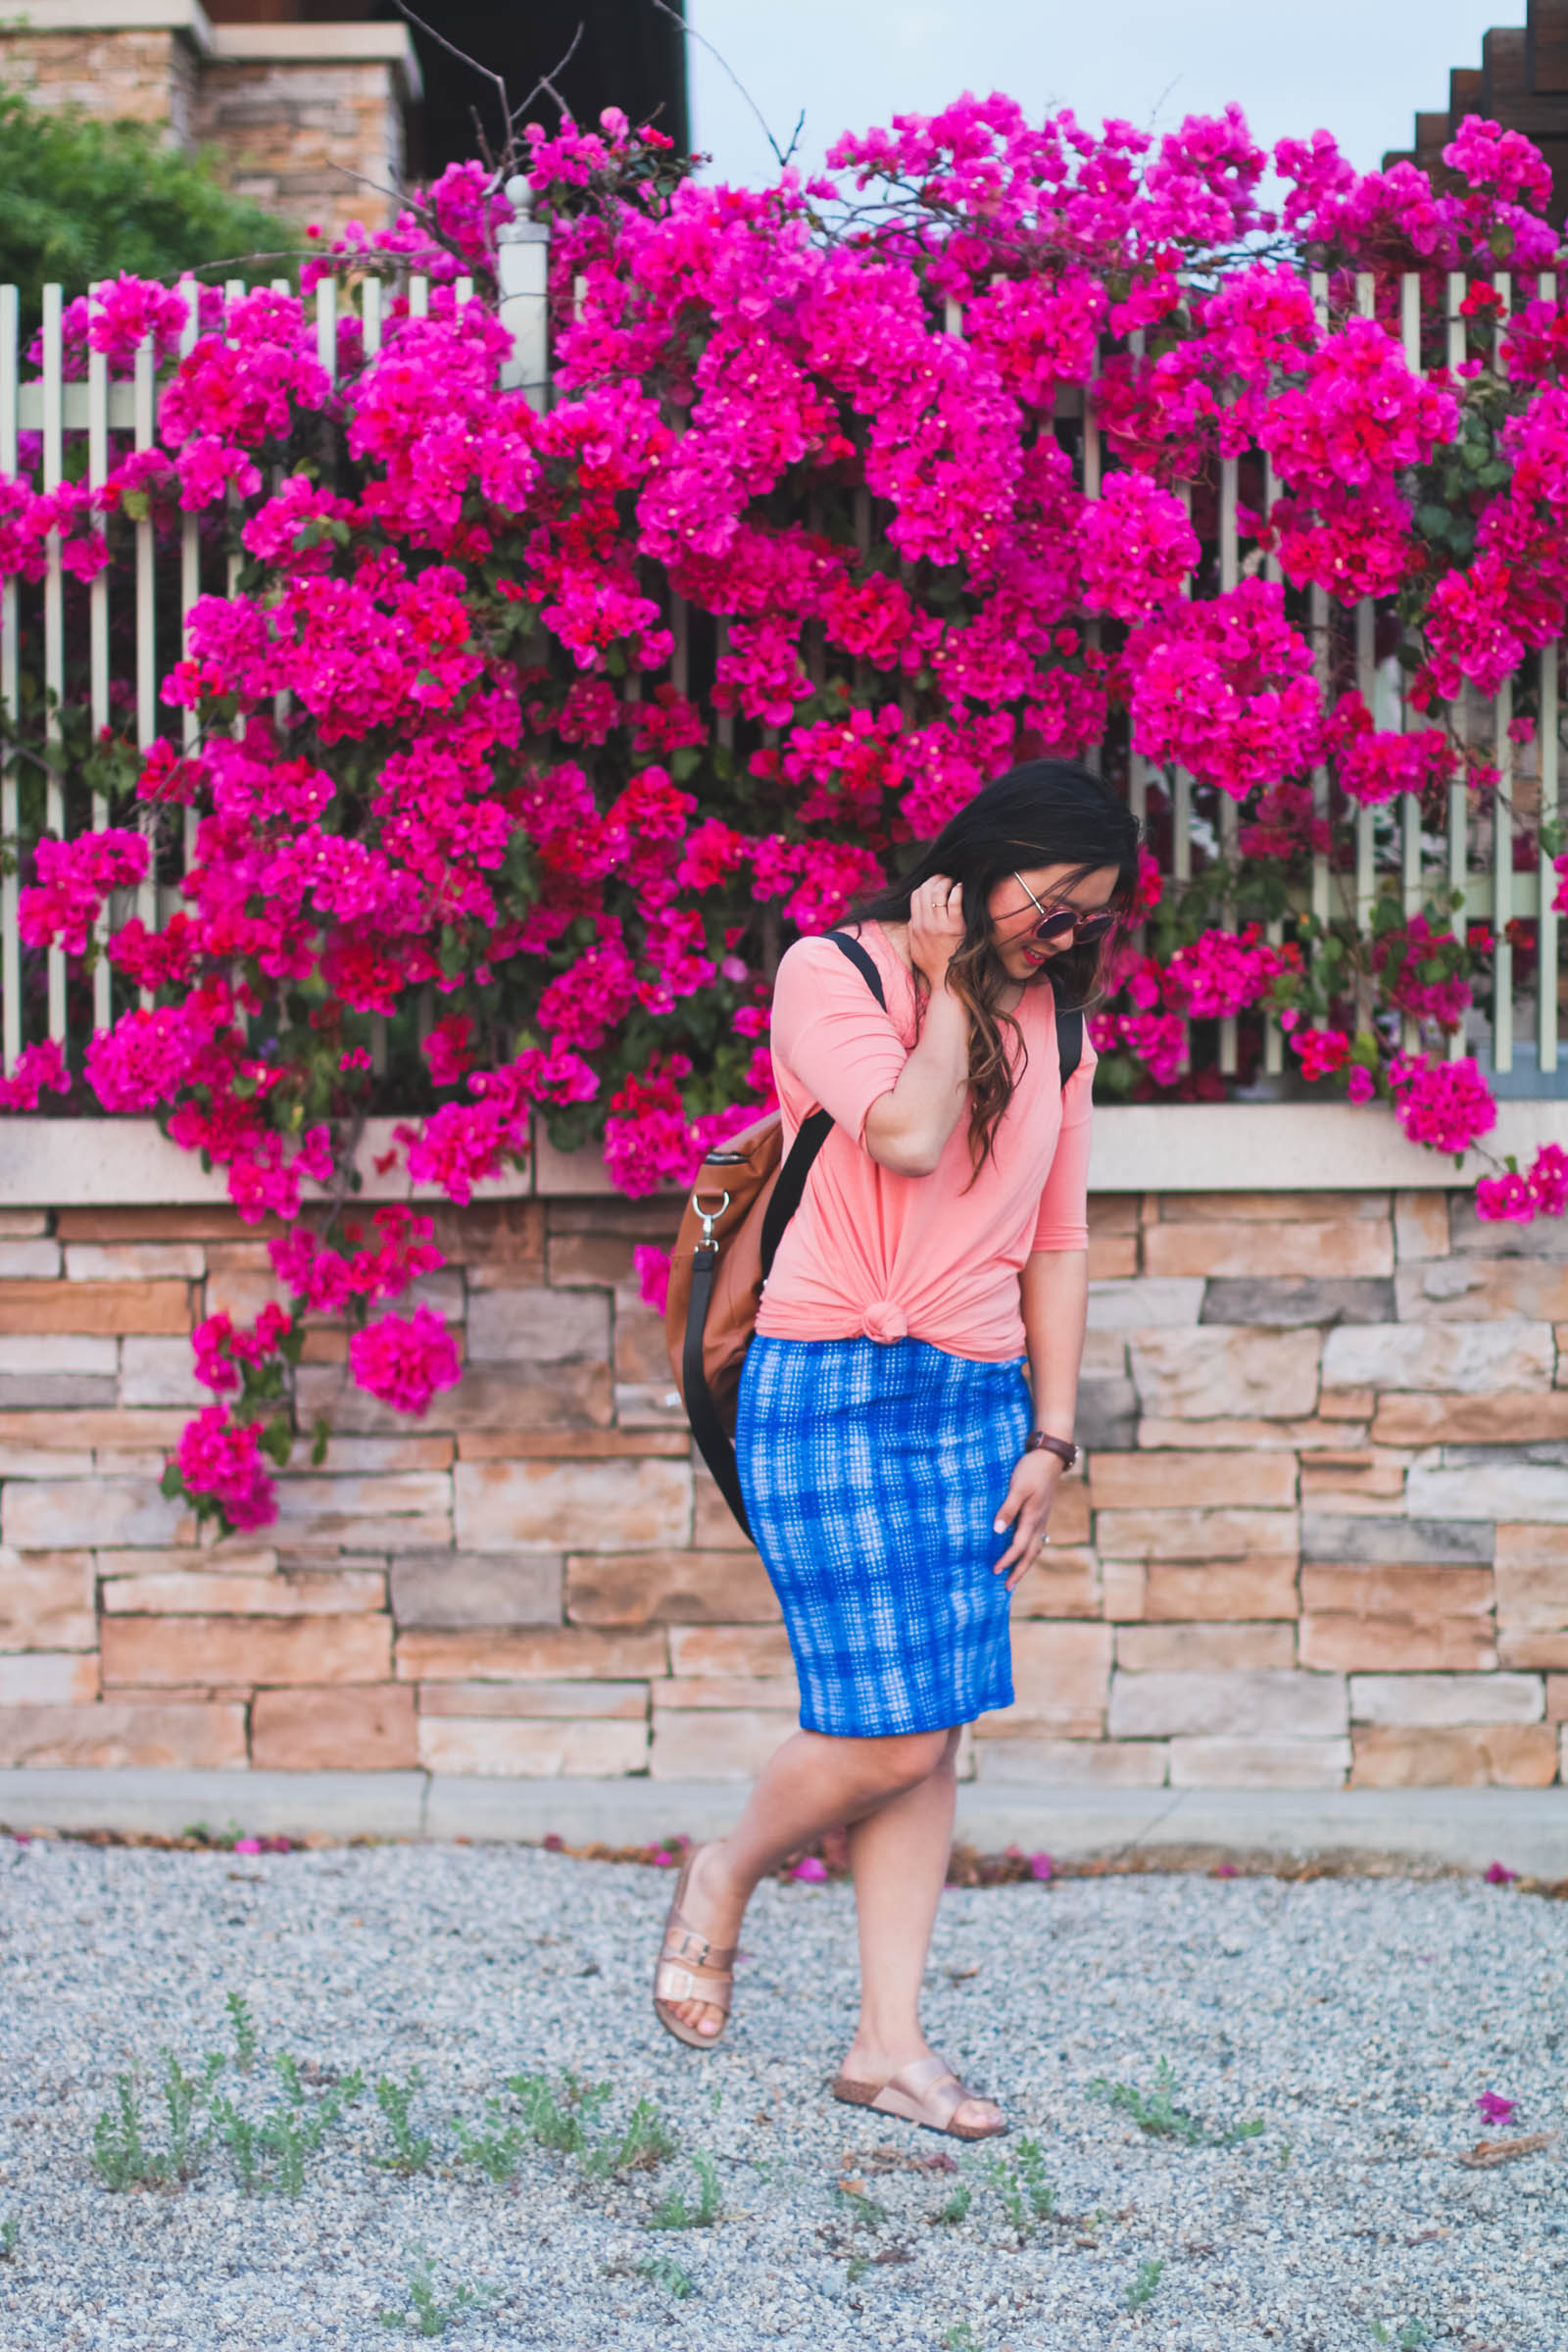 How to become a LulaRoe Consultant